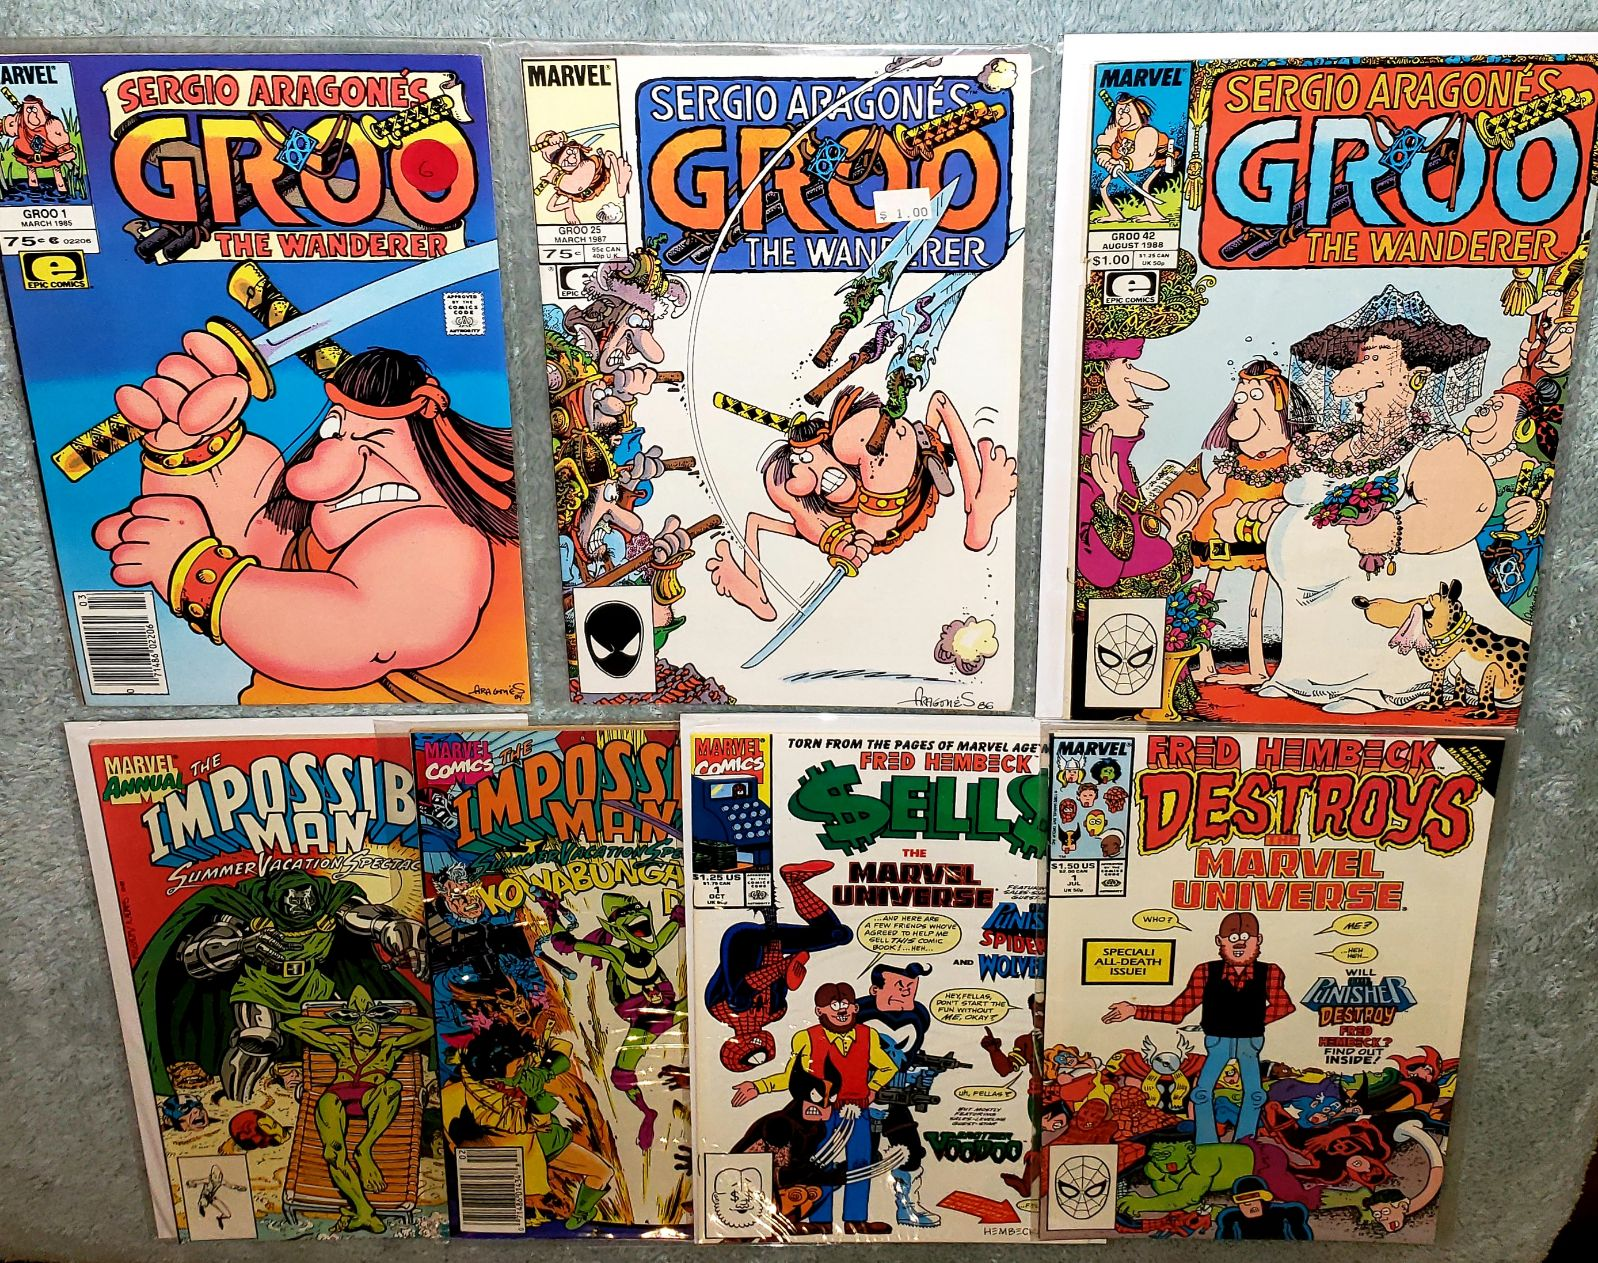 7 GROO IMPOSSIBLE MAN FRED HEMBECK